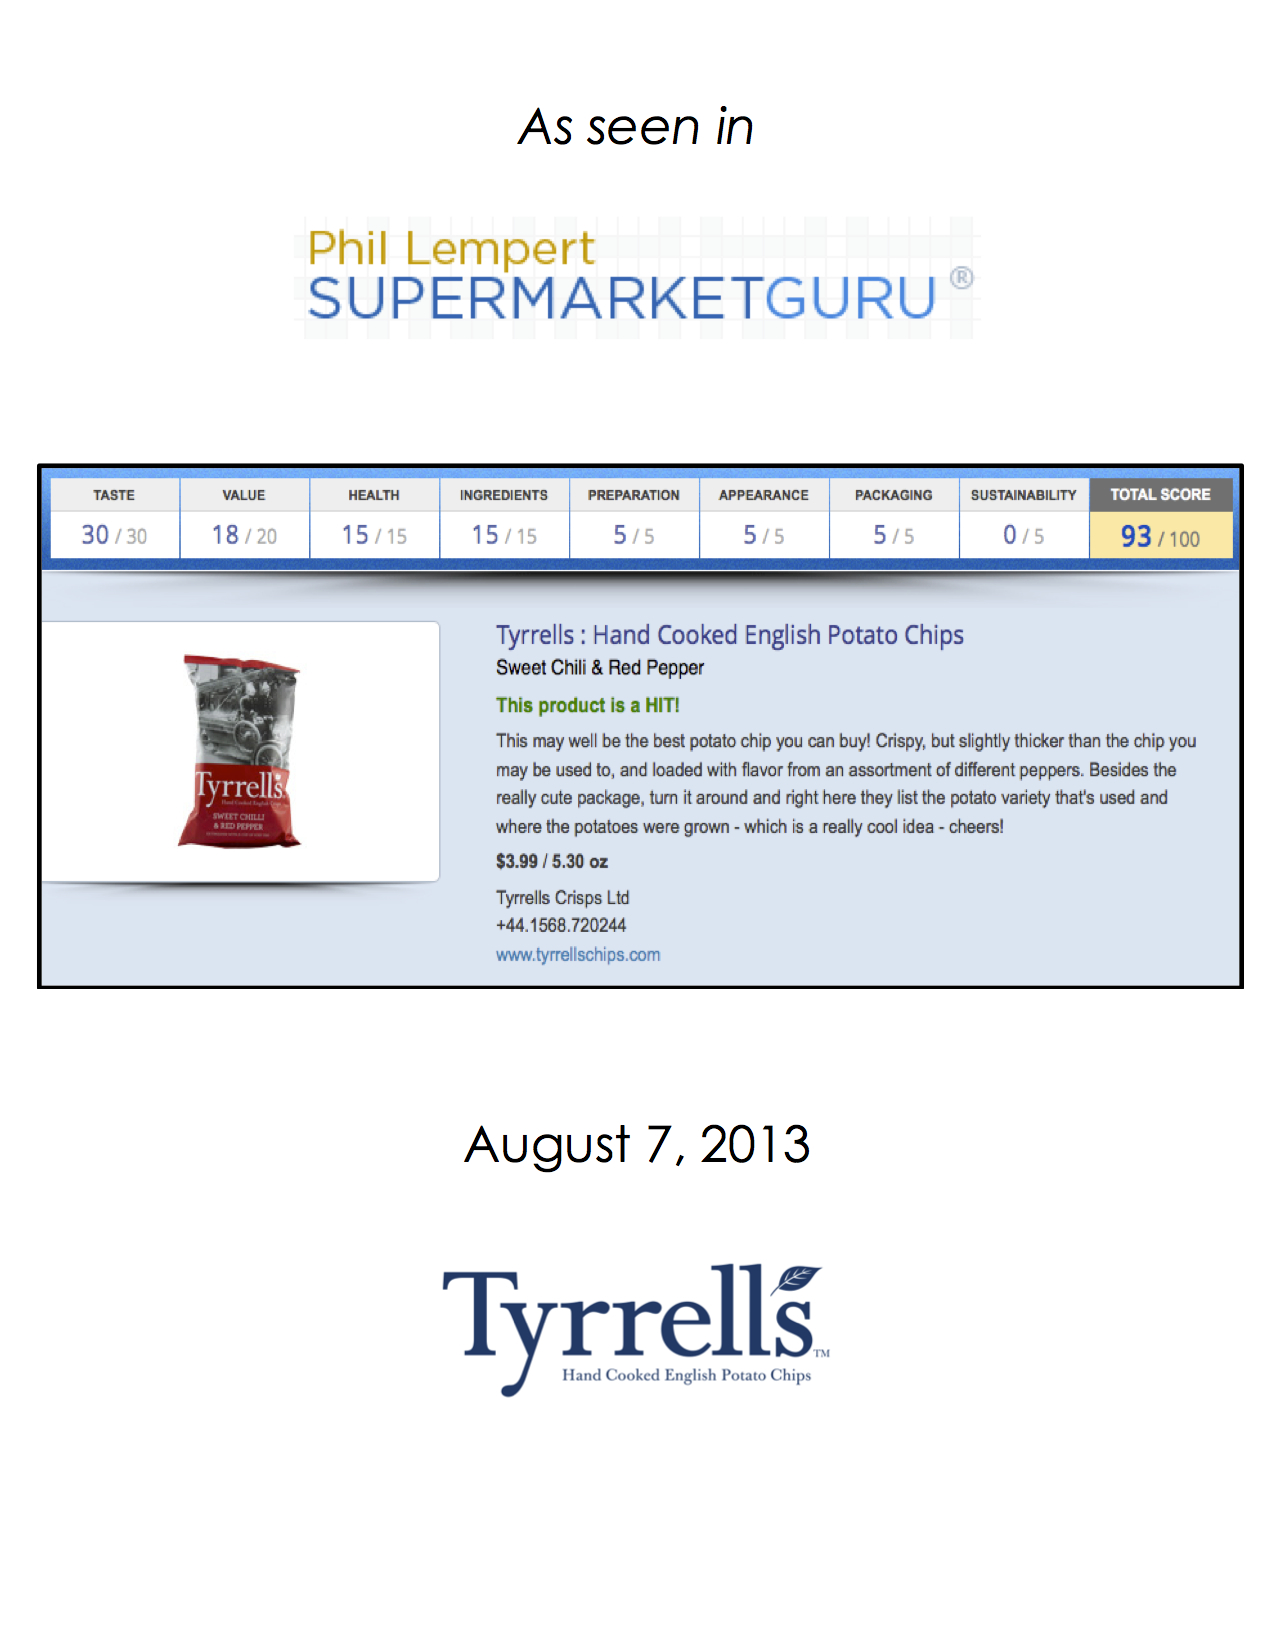 tyrrells-asseenin-supermarketguru copy.jpg